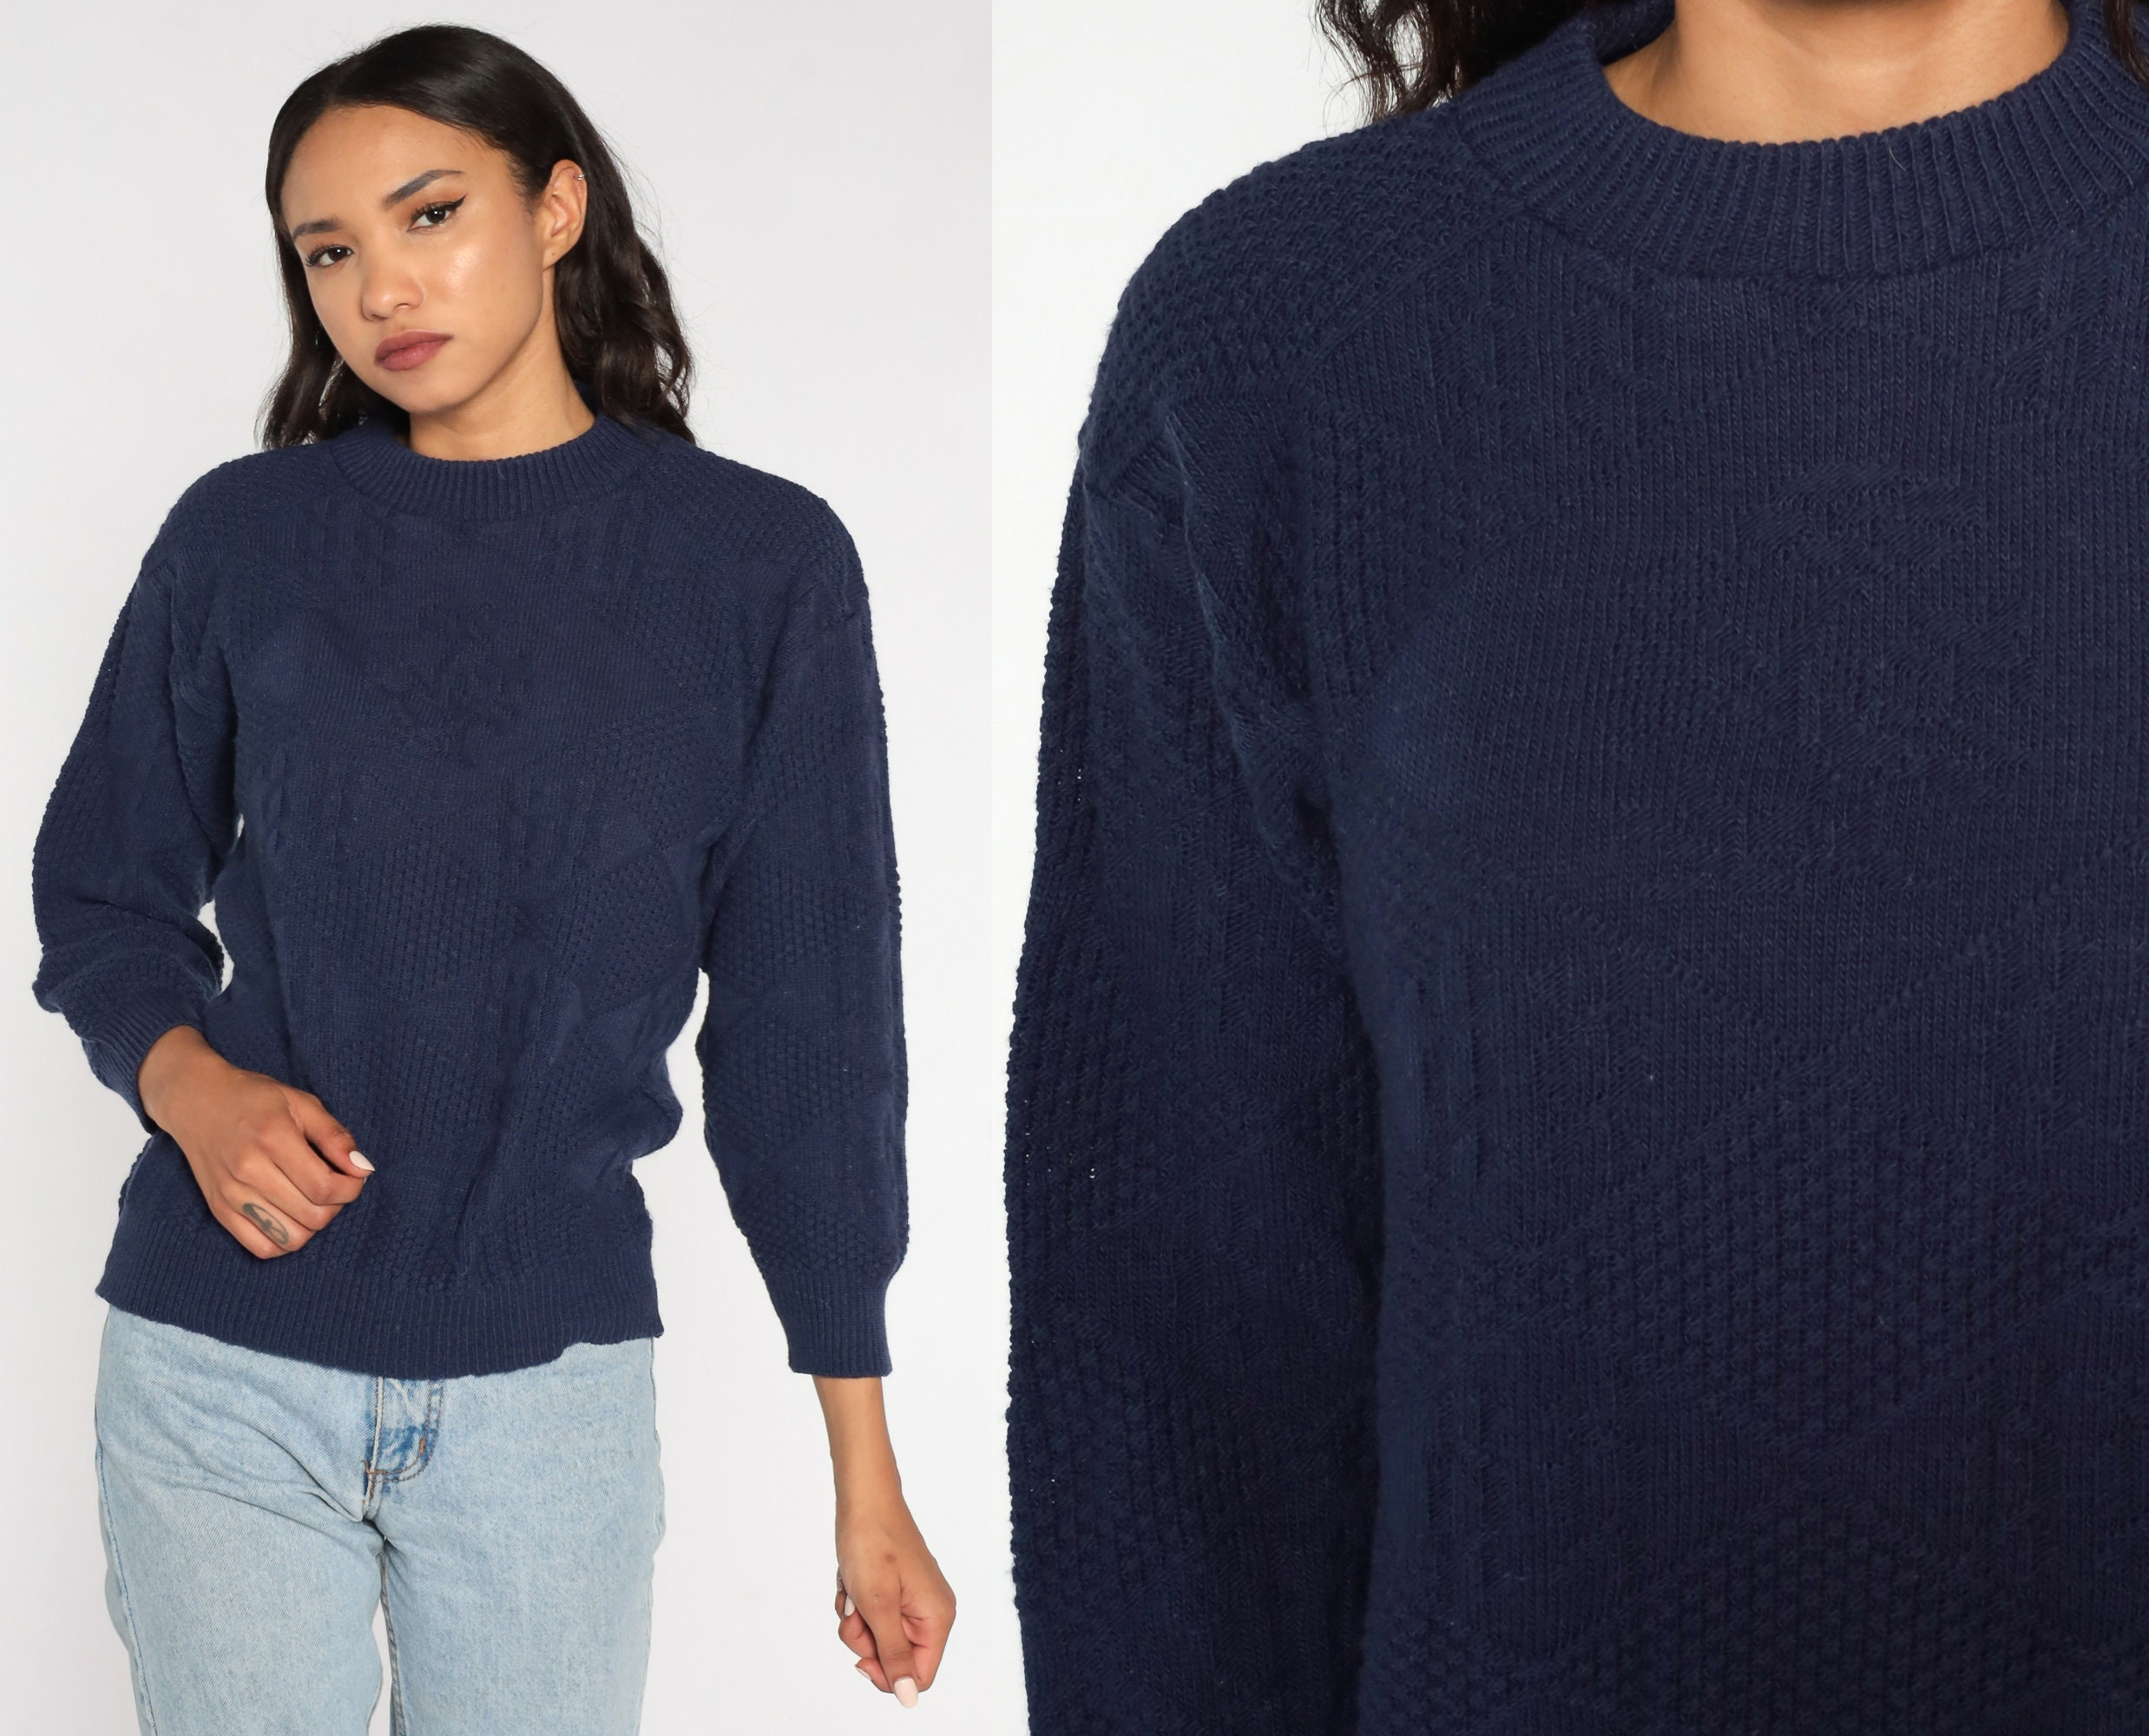 80s Sweatshirts, Sweaters, Vests | Women 80S Sweater Navy Blue Slouchy Knit Textured 1980S Jumper Vintage Plain Acrylic Normcore Retro Small $39.00 AT vintagedancer.com